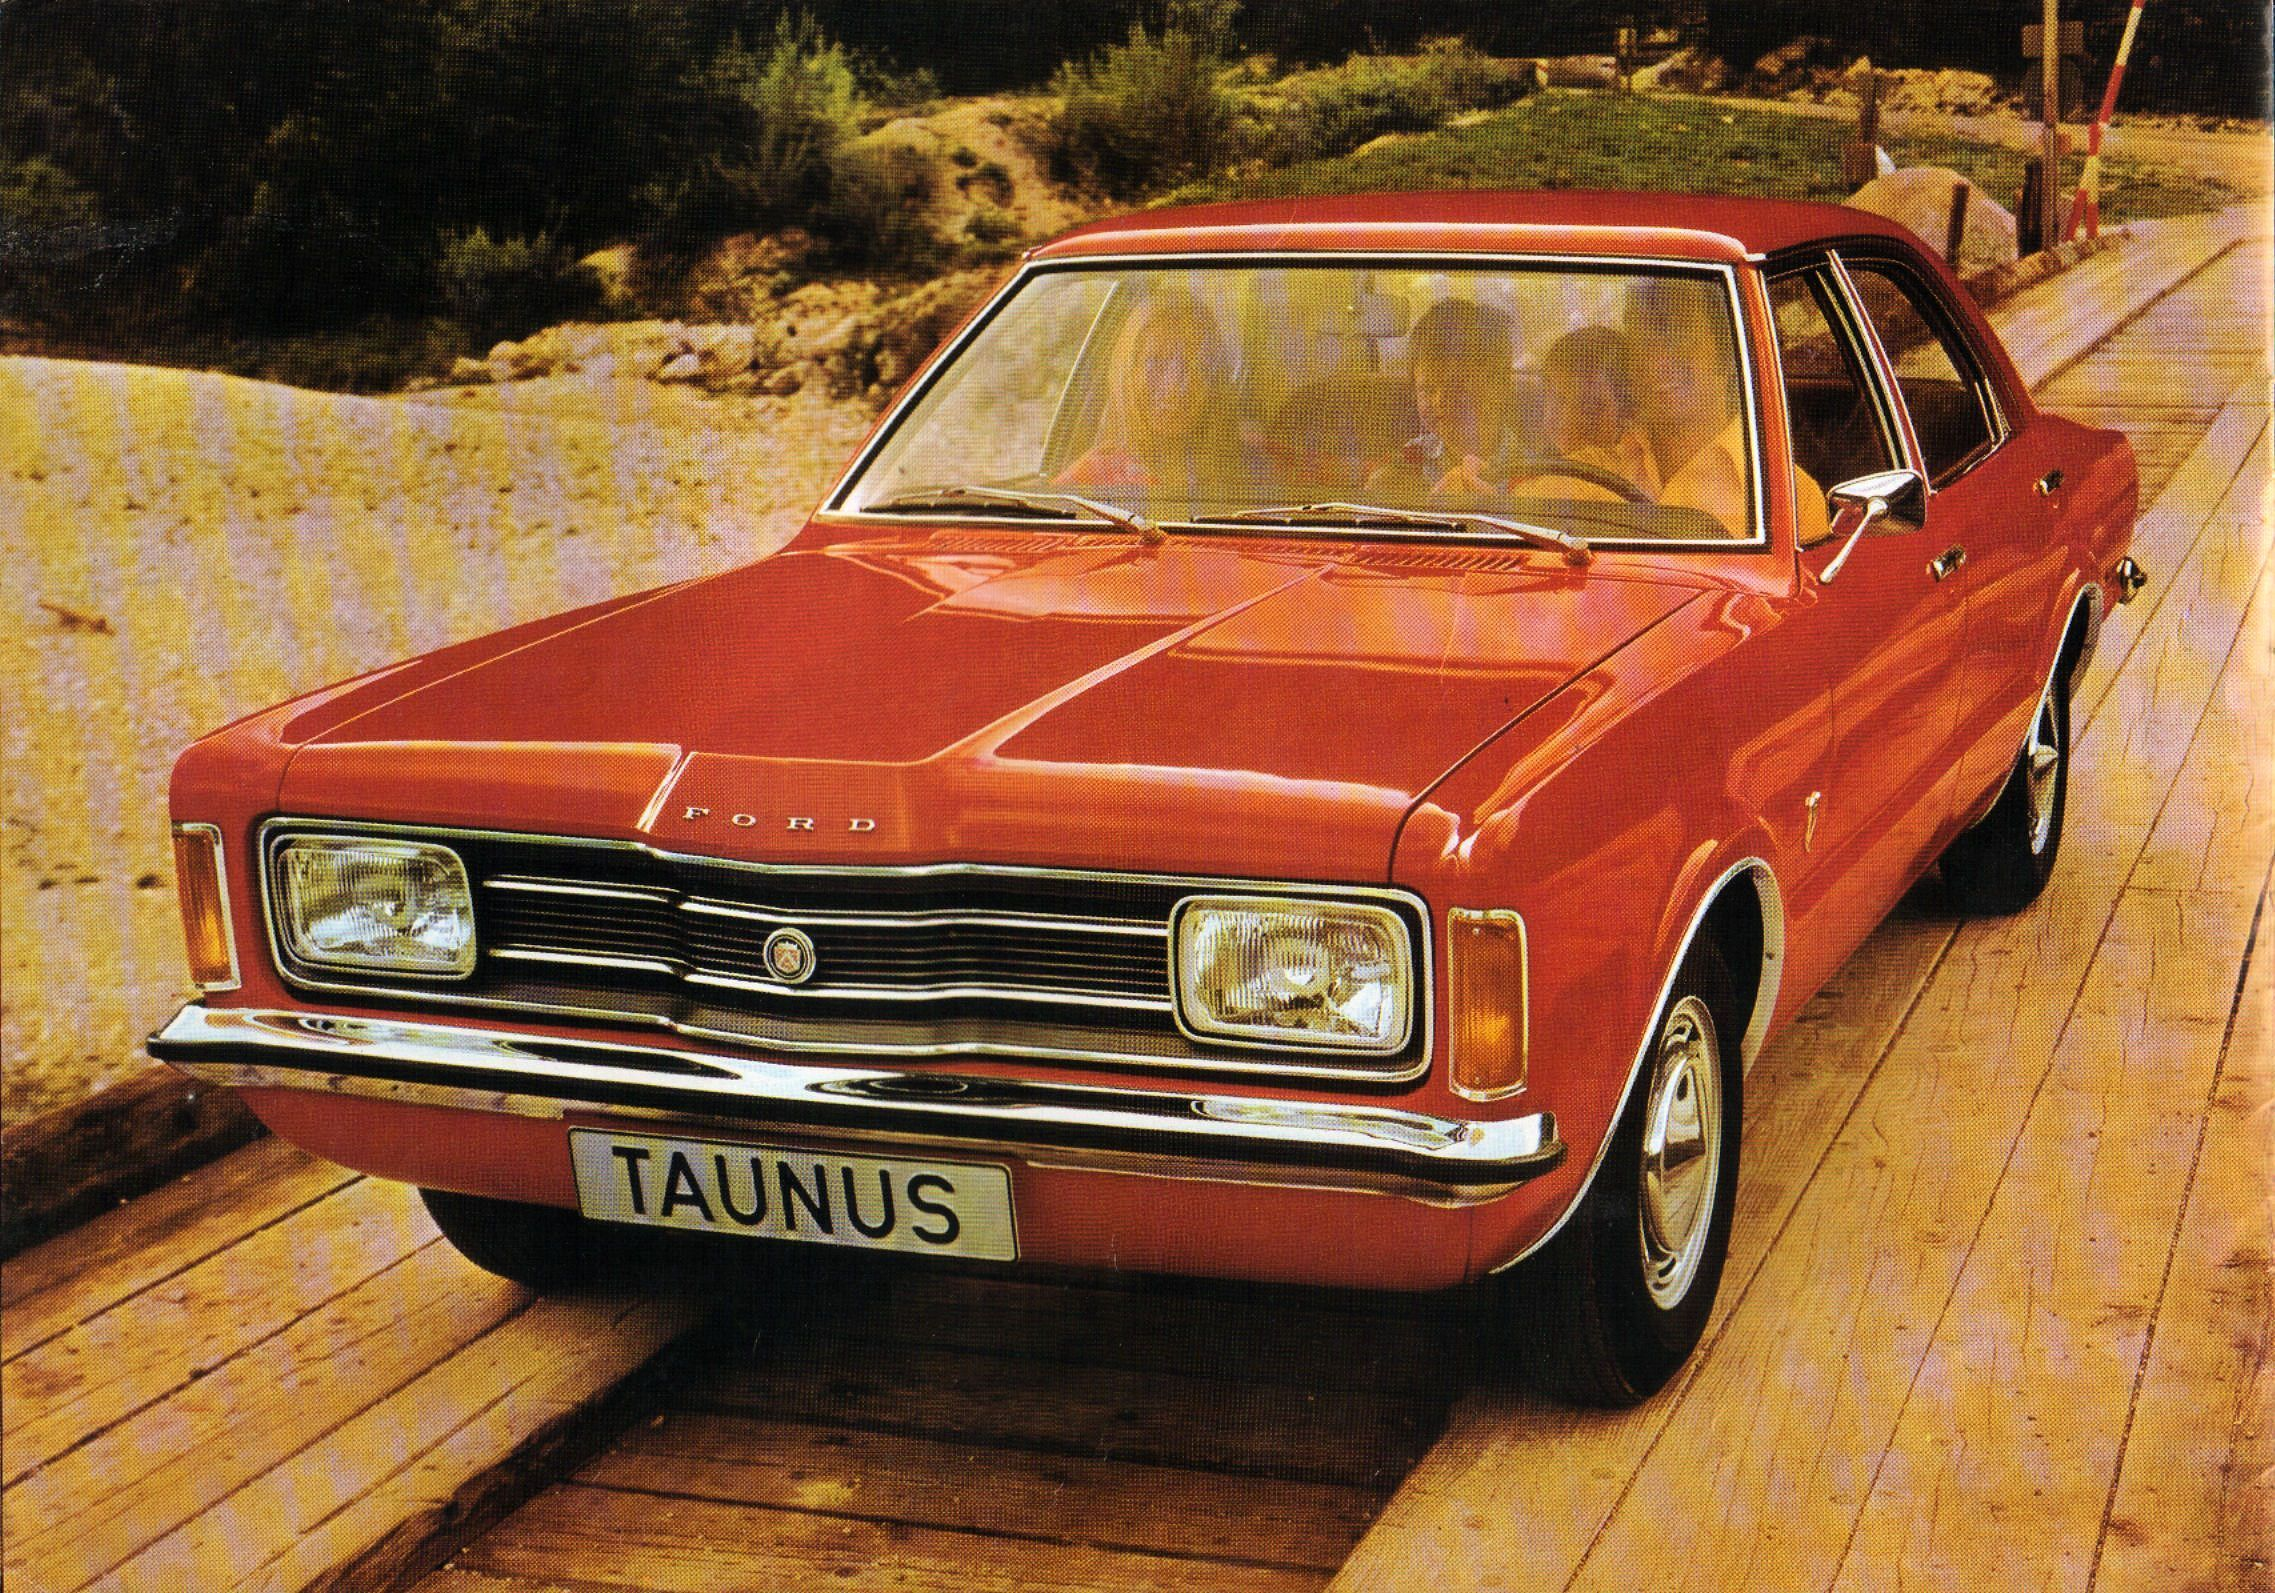 Ford Taunus 1974 Classic Cars Ford Car Ford